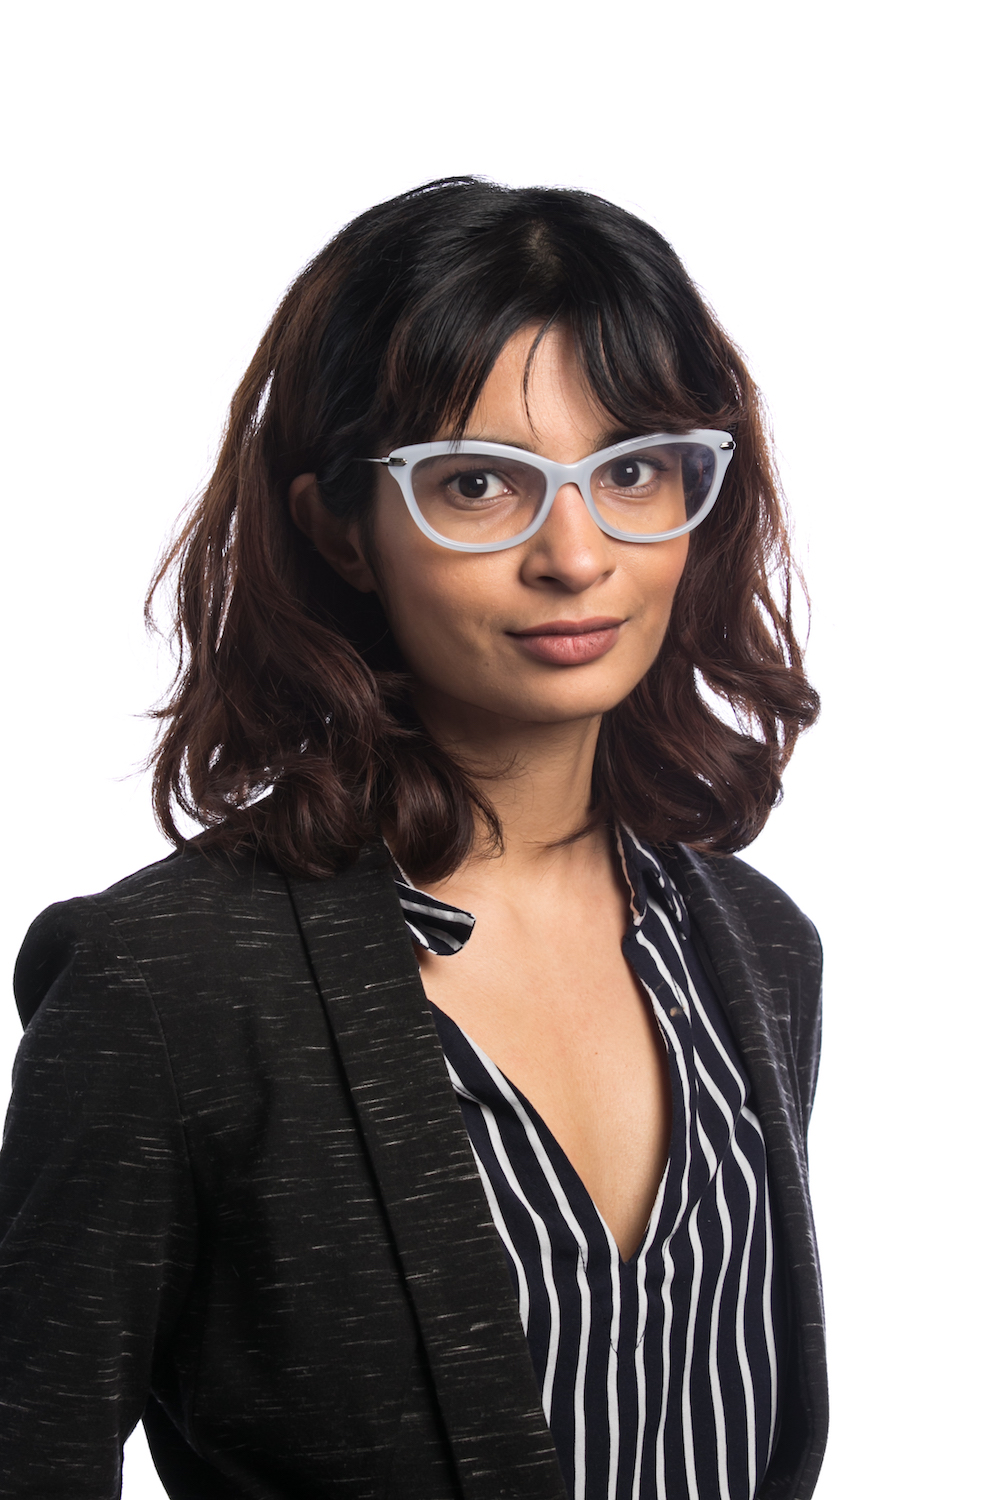 A headshot of an Indian woman with wavy brown hair (a balayage). She is wearing a black blazer speckled with lines and a V-neck navy blue pinstripe blouse. She also has on big, light blue cat-eye glasses.